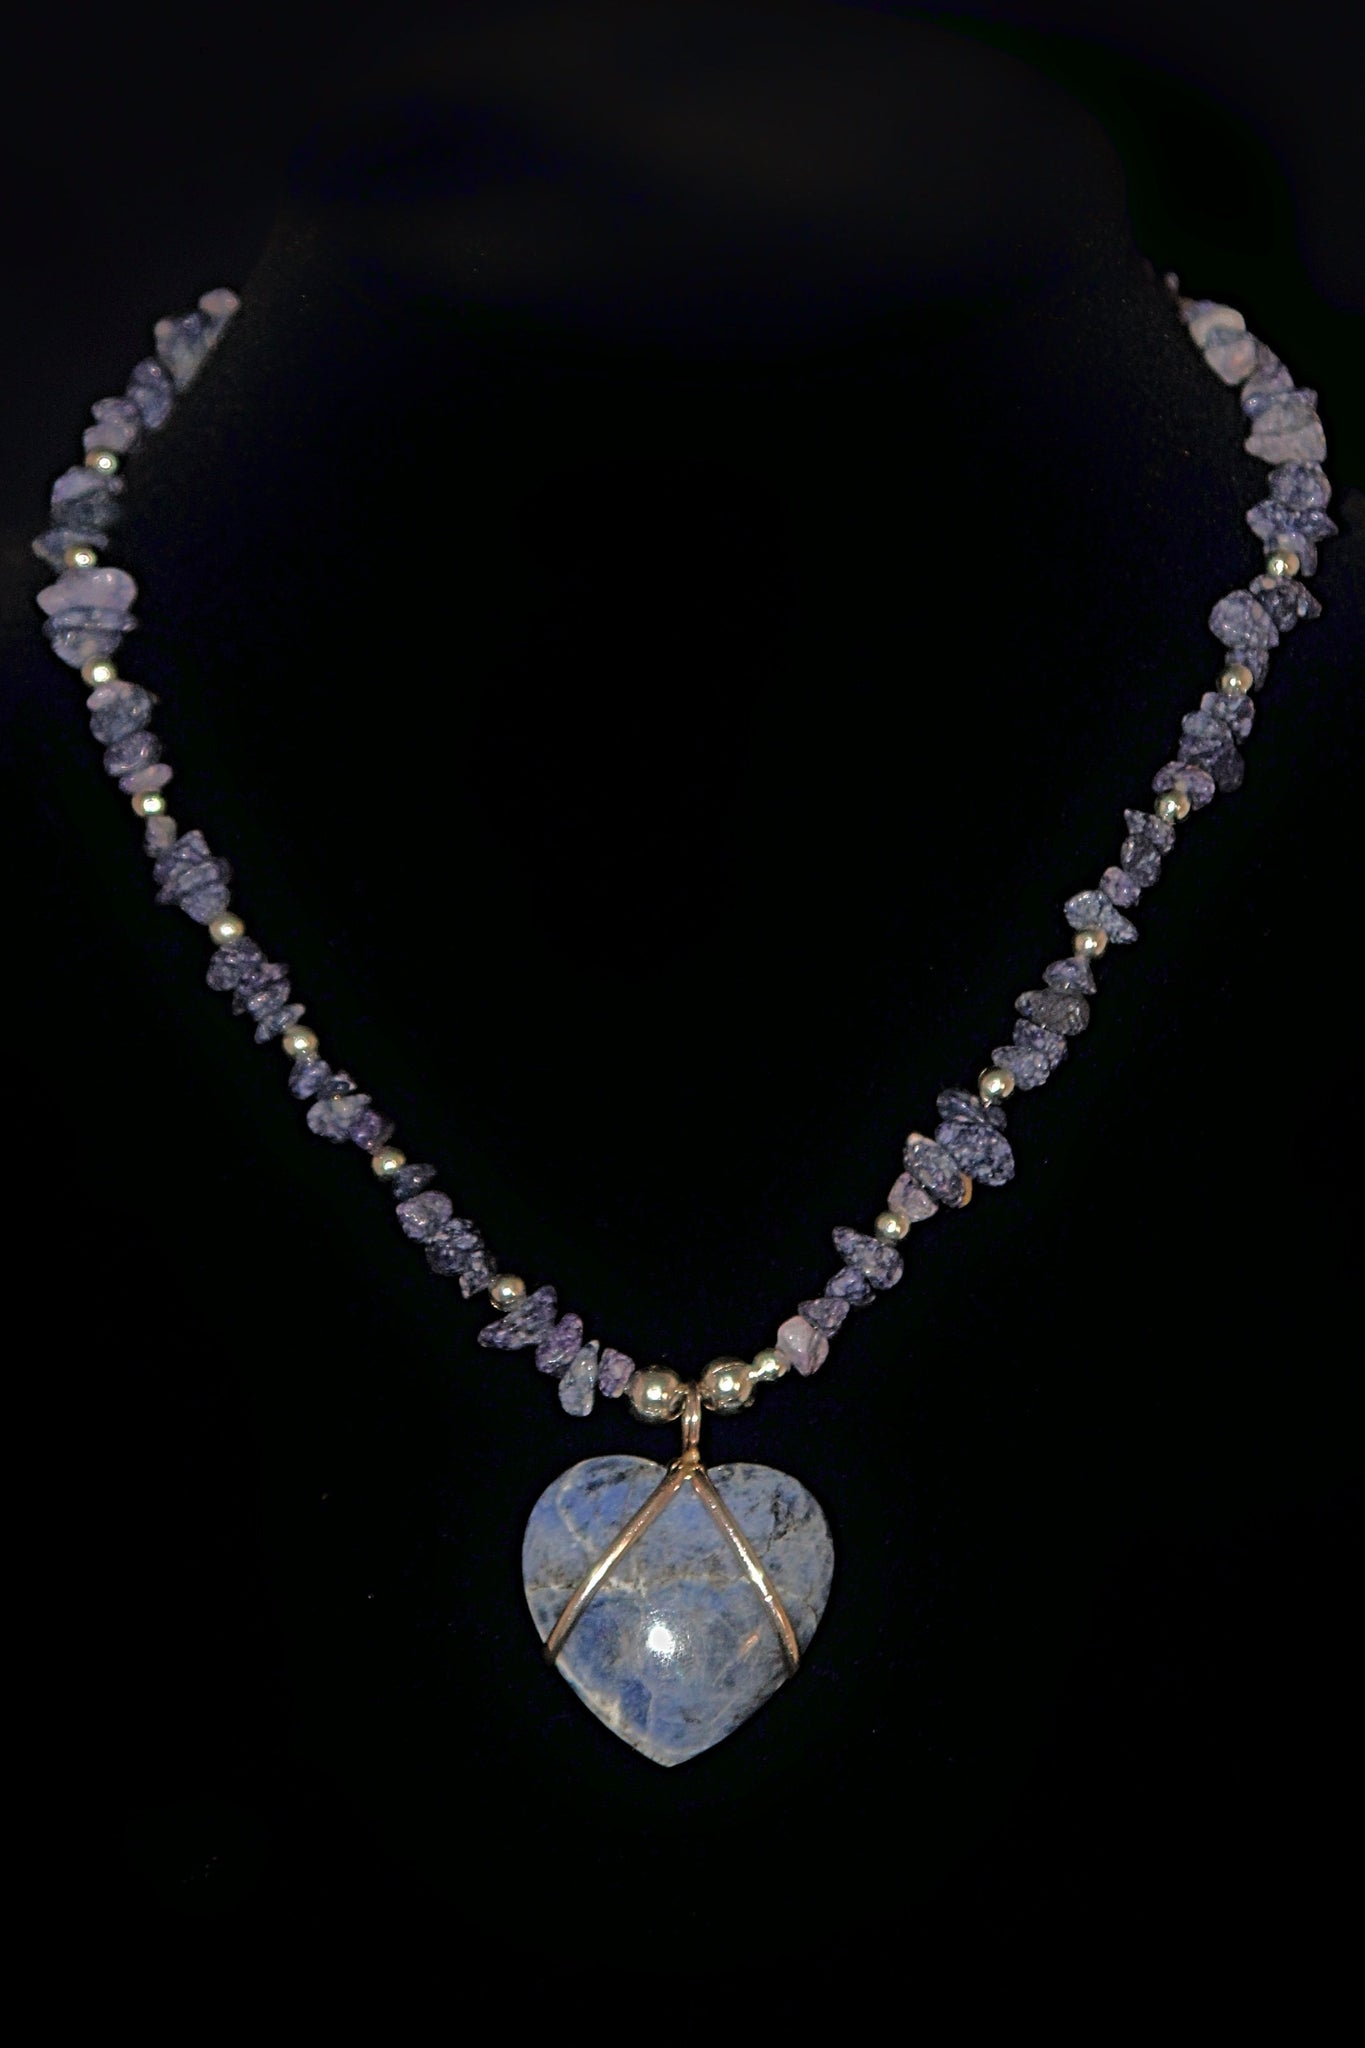 Blue Stone Heart Necklace - Native Nation Arts & Crafts